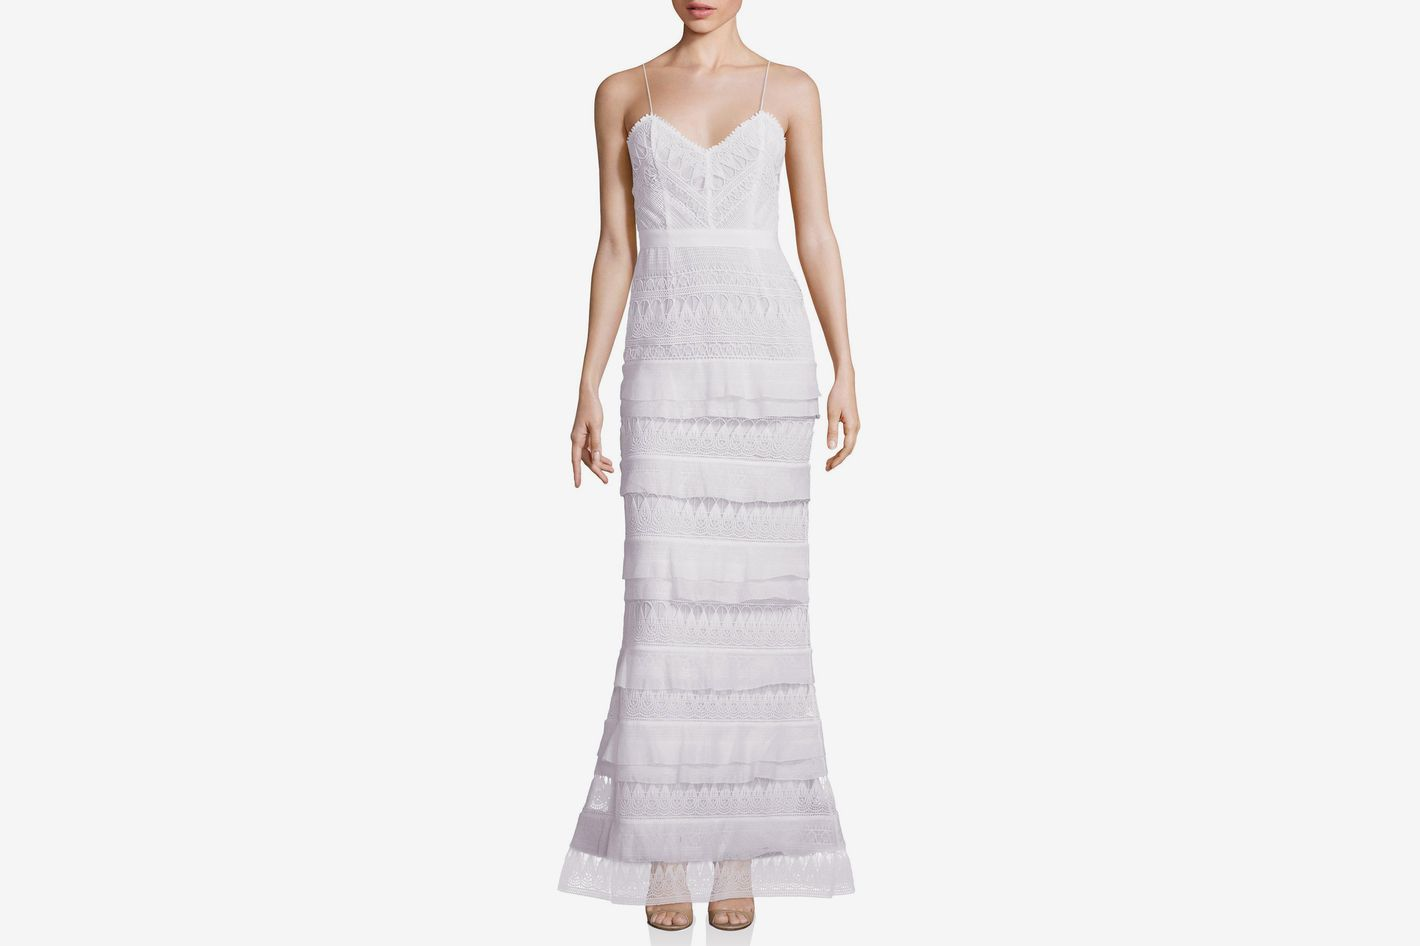 Self-Portrait Penelope Tiered Lace Gown